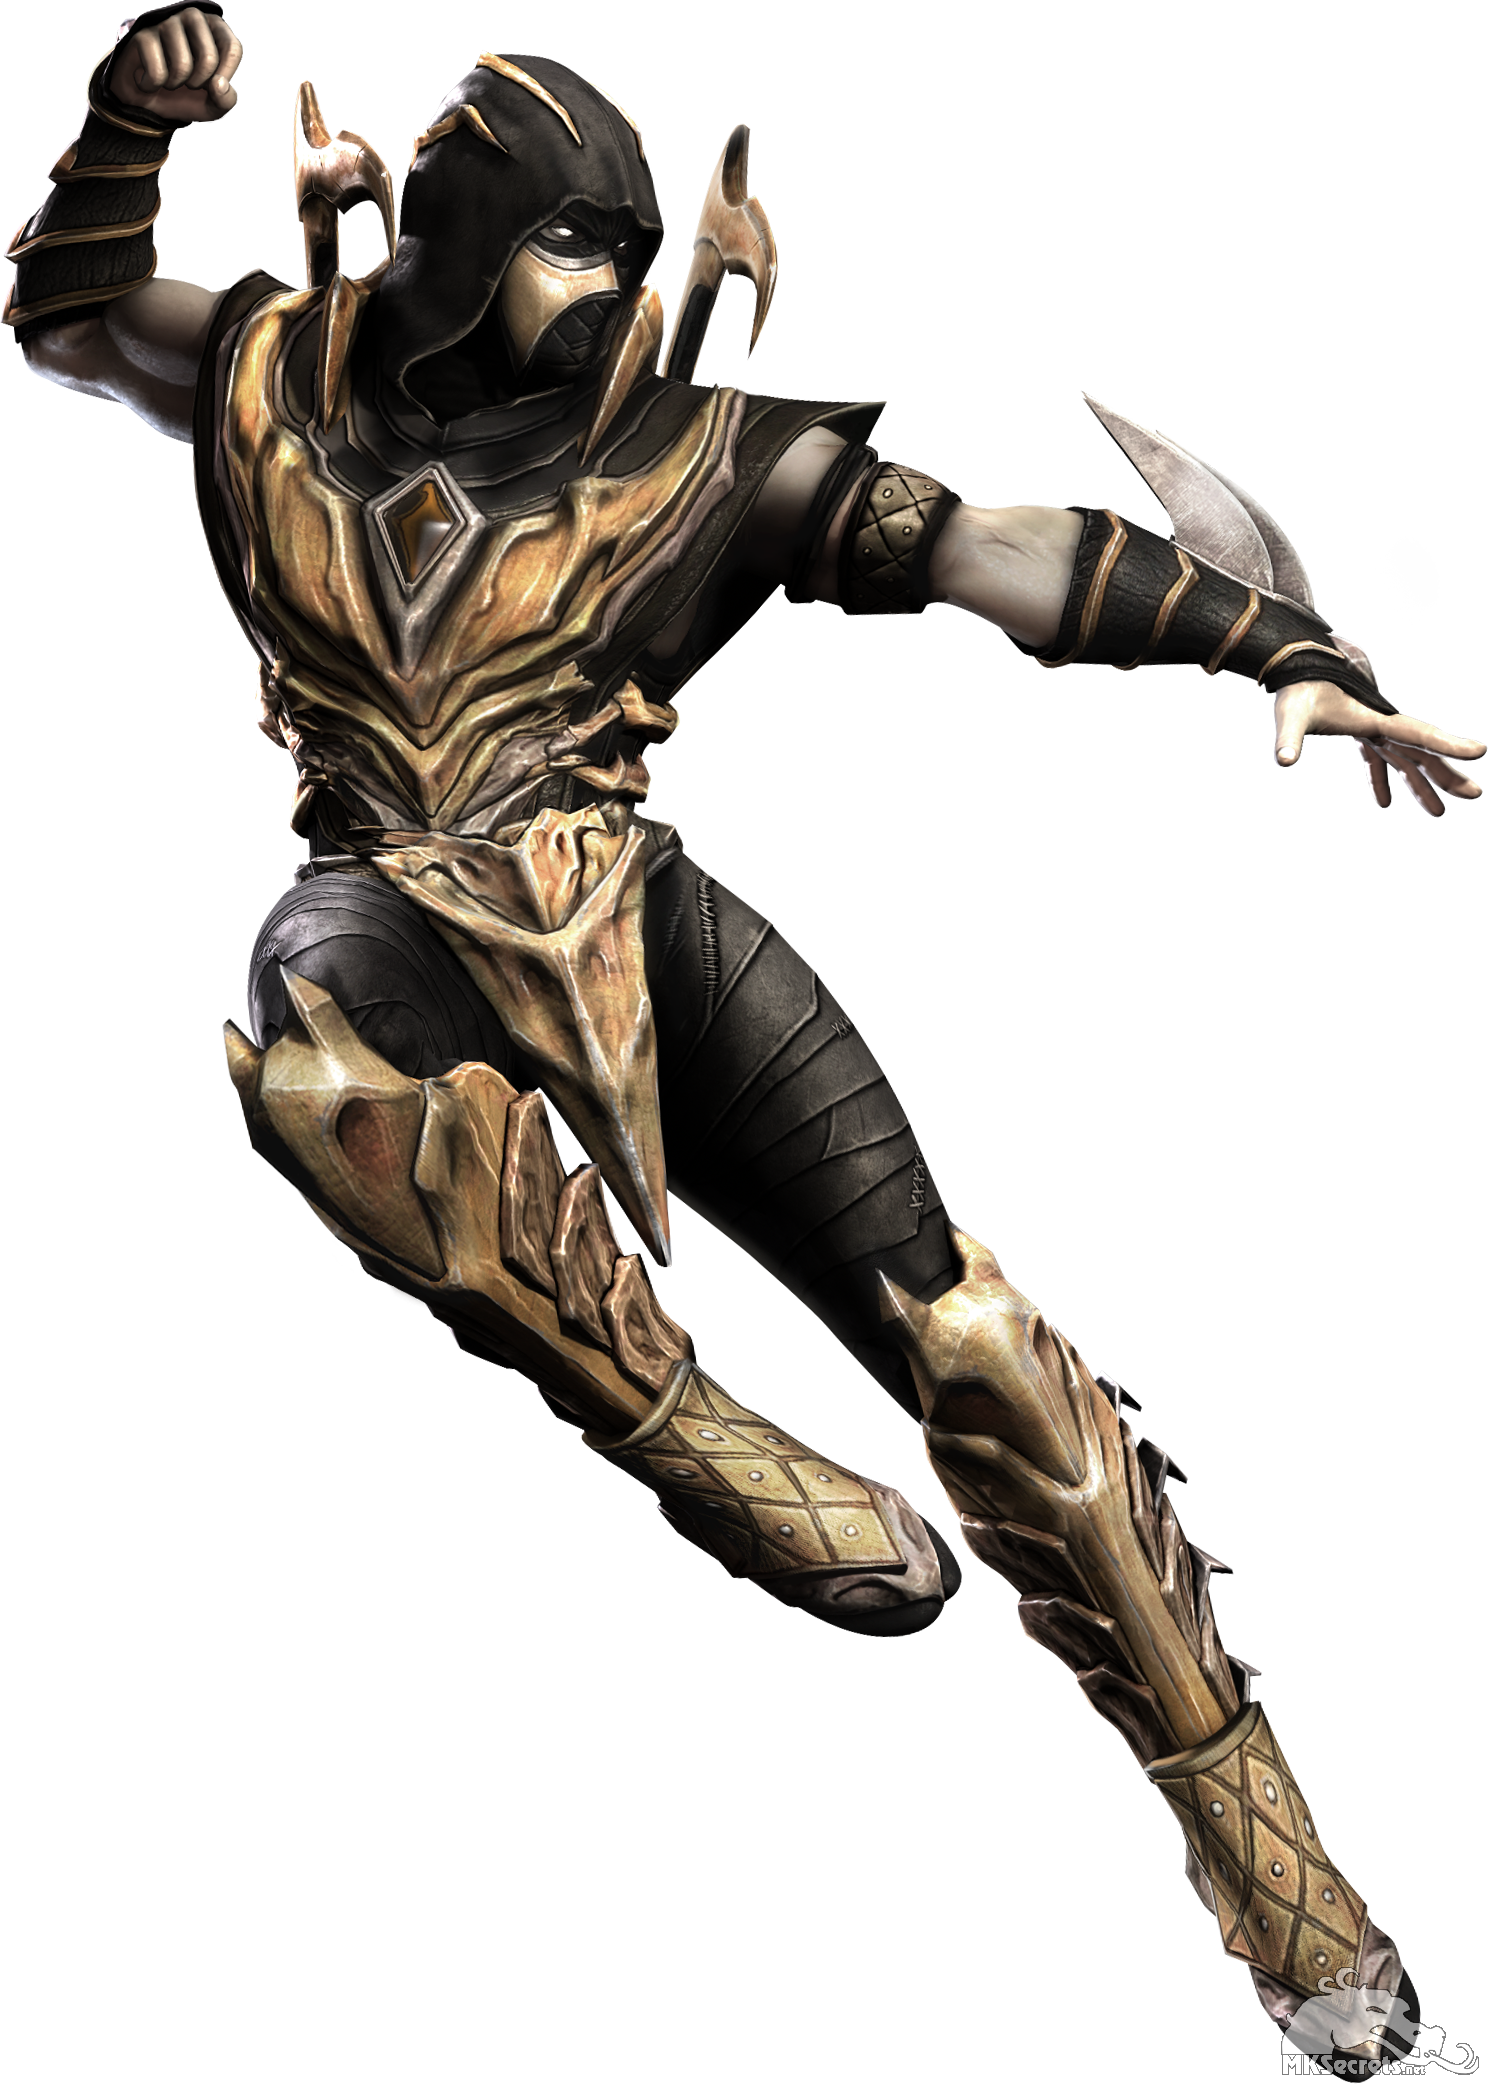 Injustice Gods Among Us Scorpion Render Png Scorpion Mortal